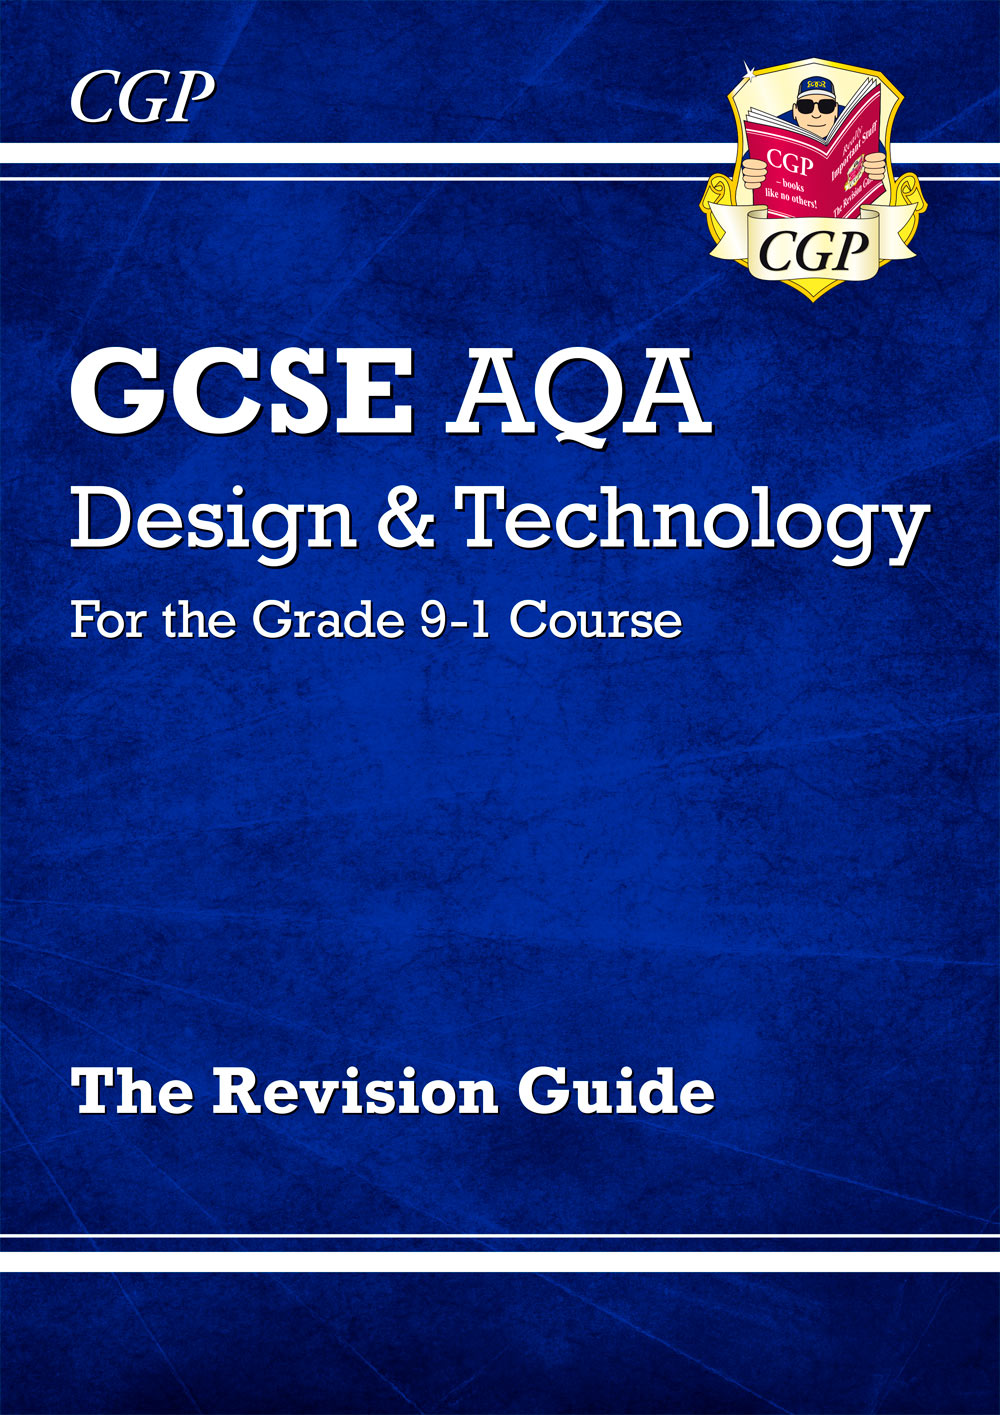 TAR41 - Grade 9-1 GCSE Design & Technology AQA Revision Guide